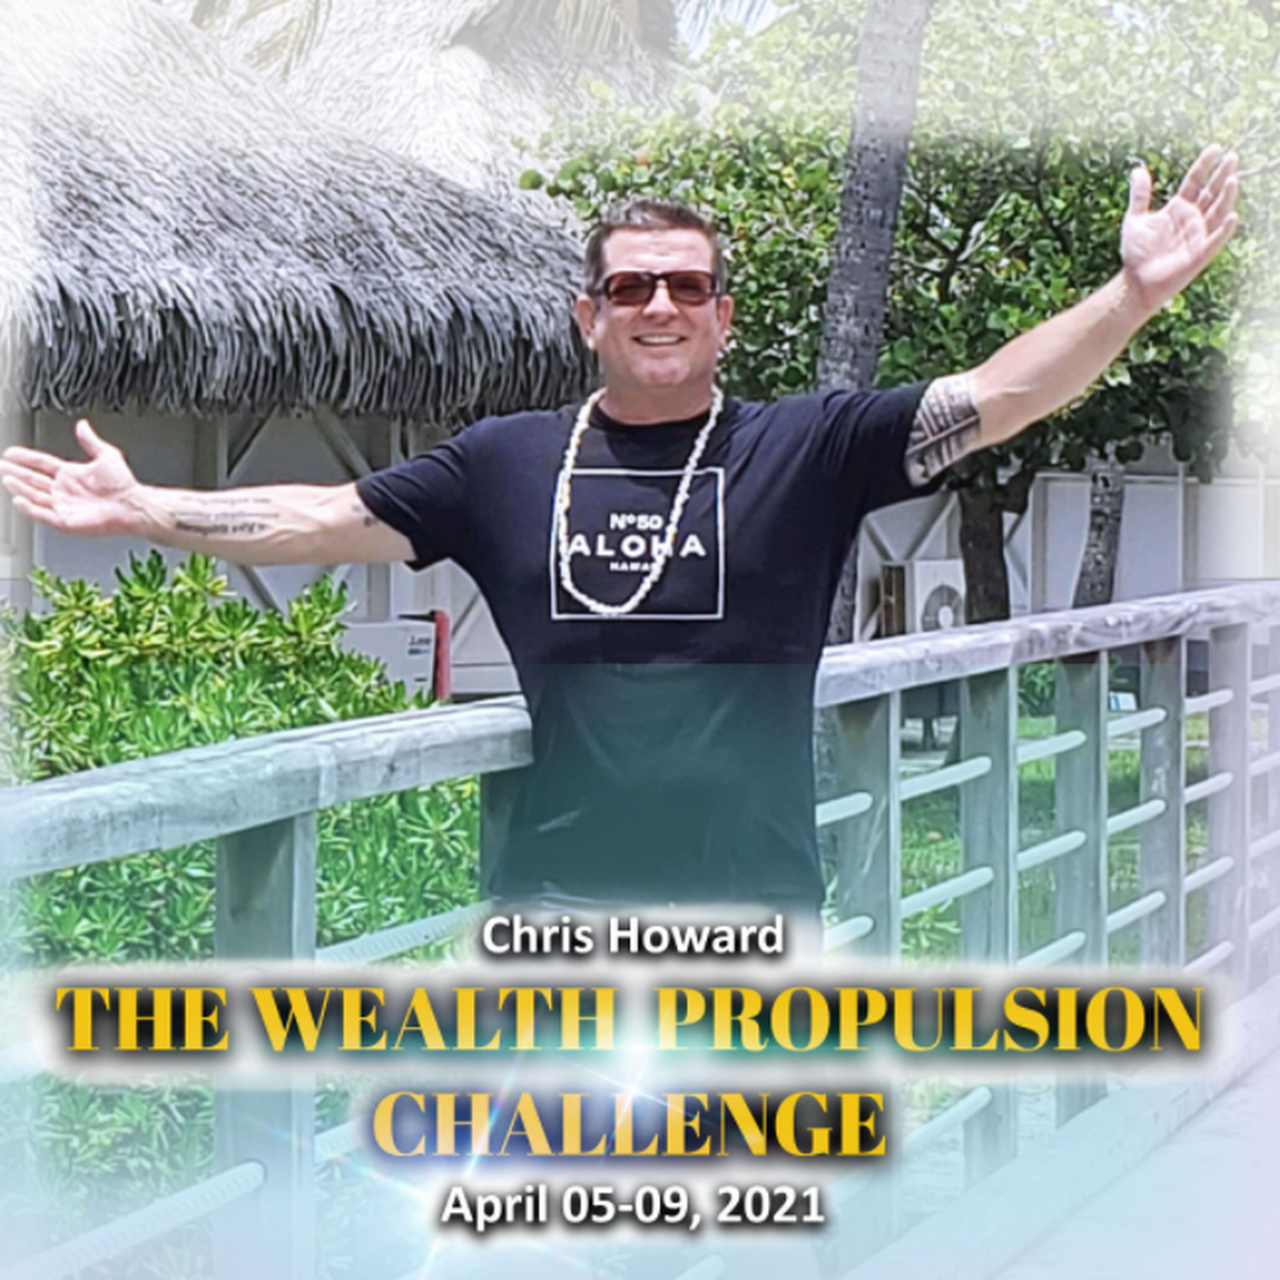 The Wealth Propulsion Challenge